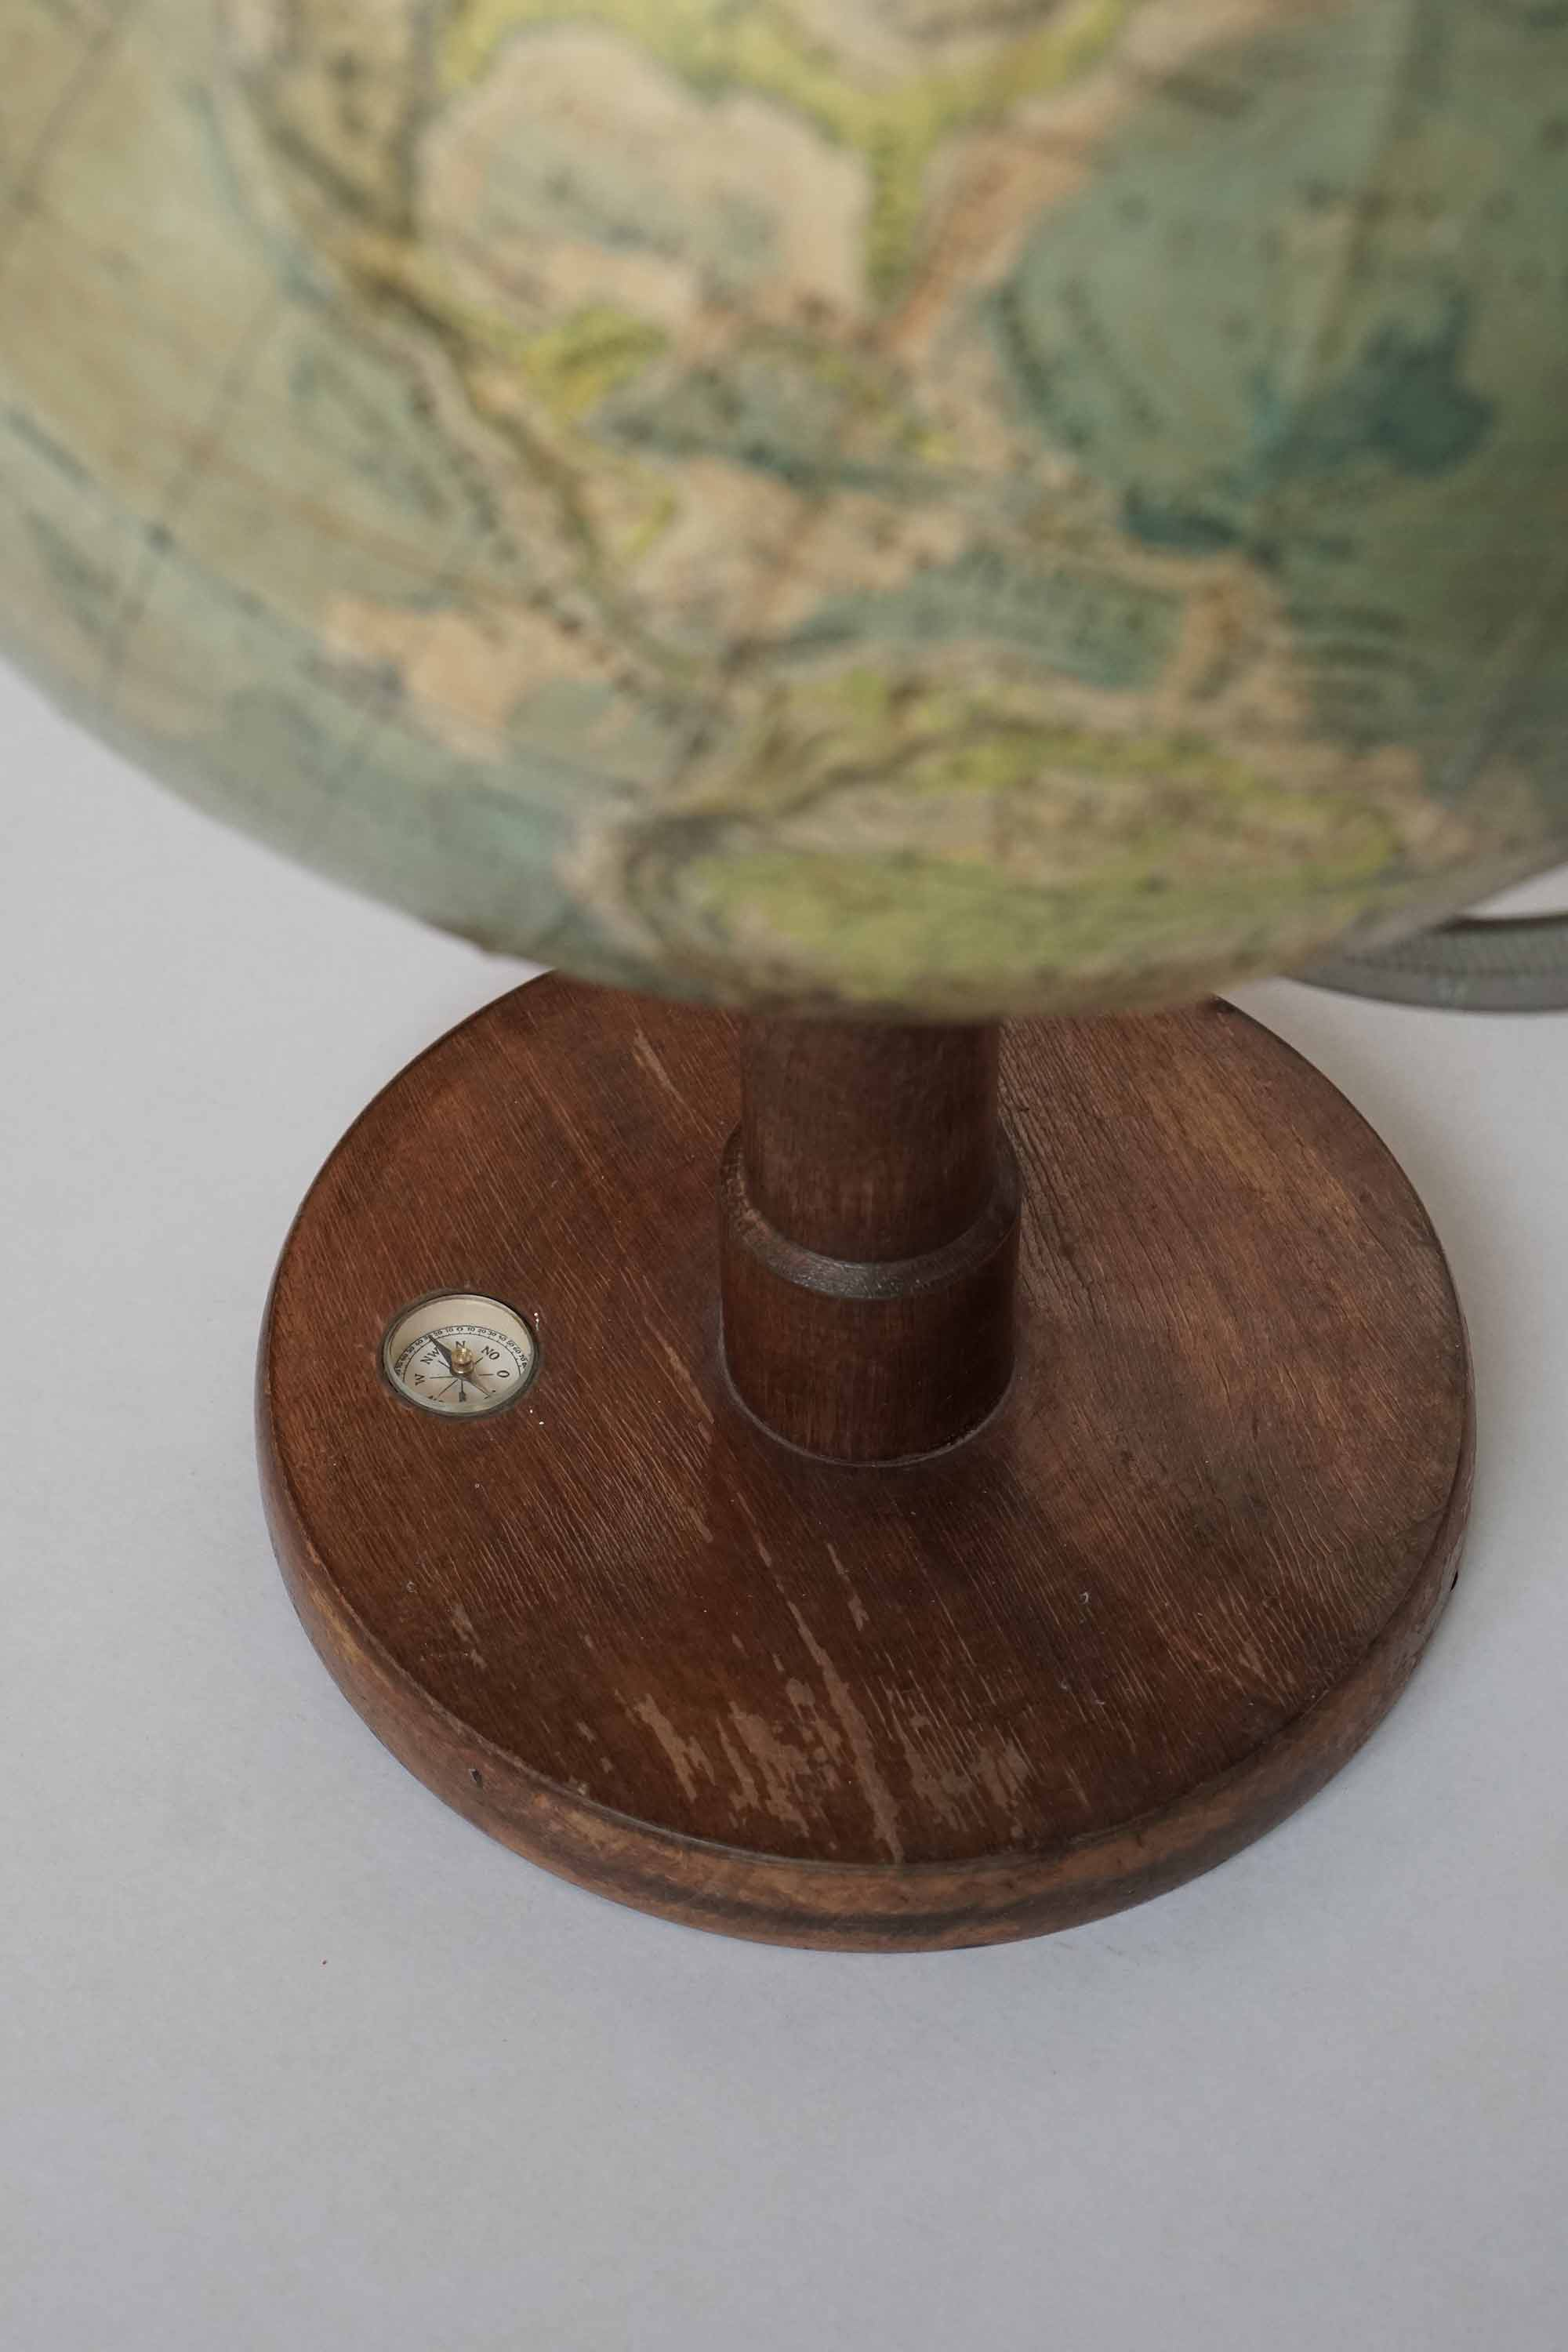 Uncommon WW2 physical world globe with compass in wooden base